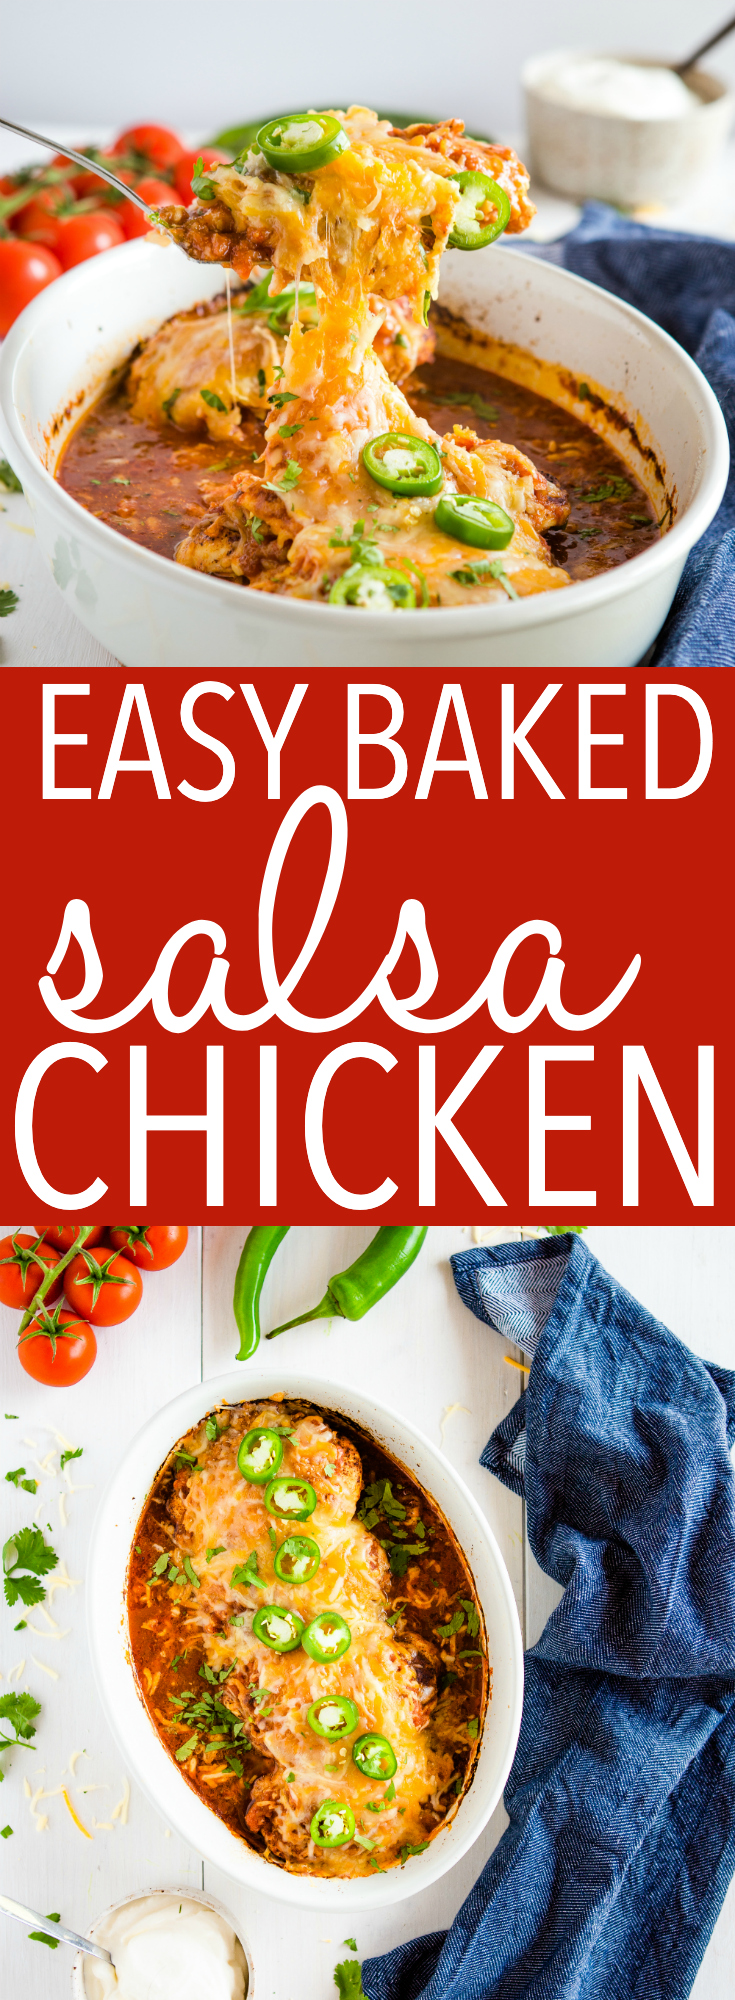 This salsa chicken recipe makes a low-carb Mexican-inspired weeknight meal in one pan! Make this salsa baked chicken in about 30 minutes! Recipe from thebusybaker.ca! #salsa #chicken #mexican #recipe #maindish #lowcarb #keto via @busybakerblog